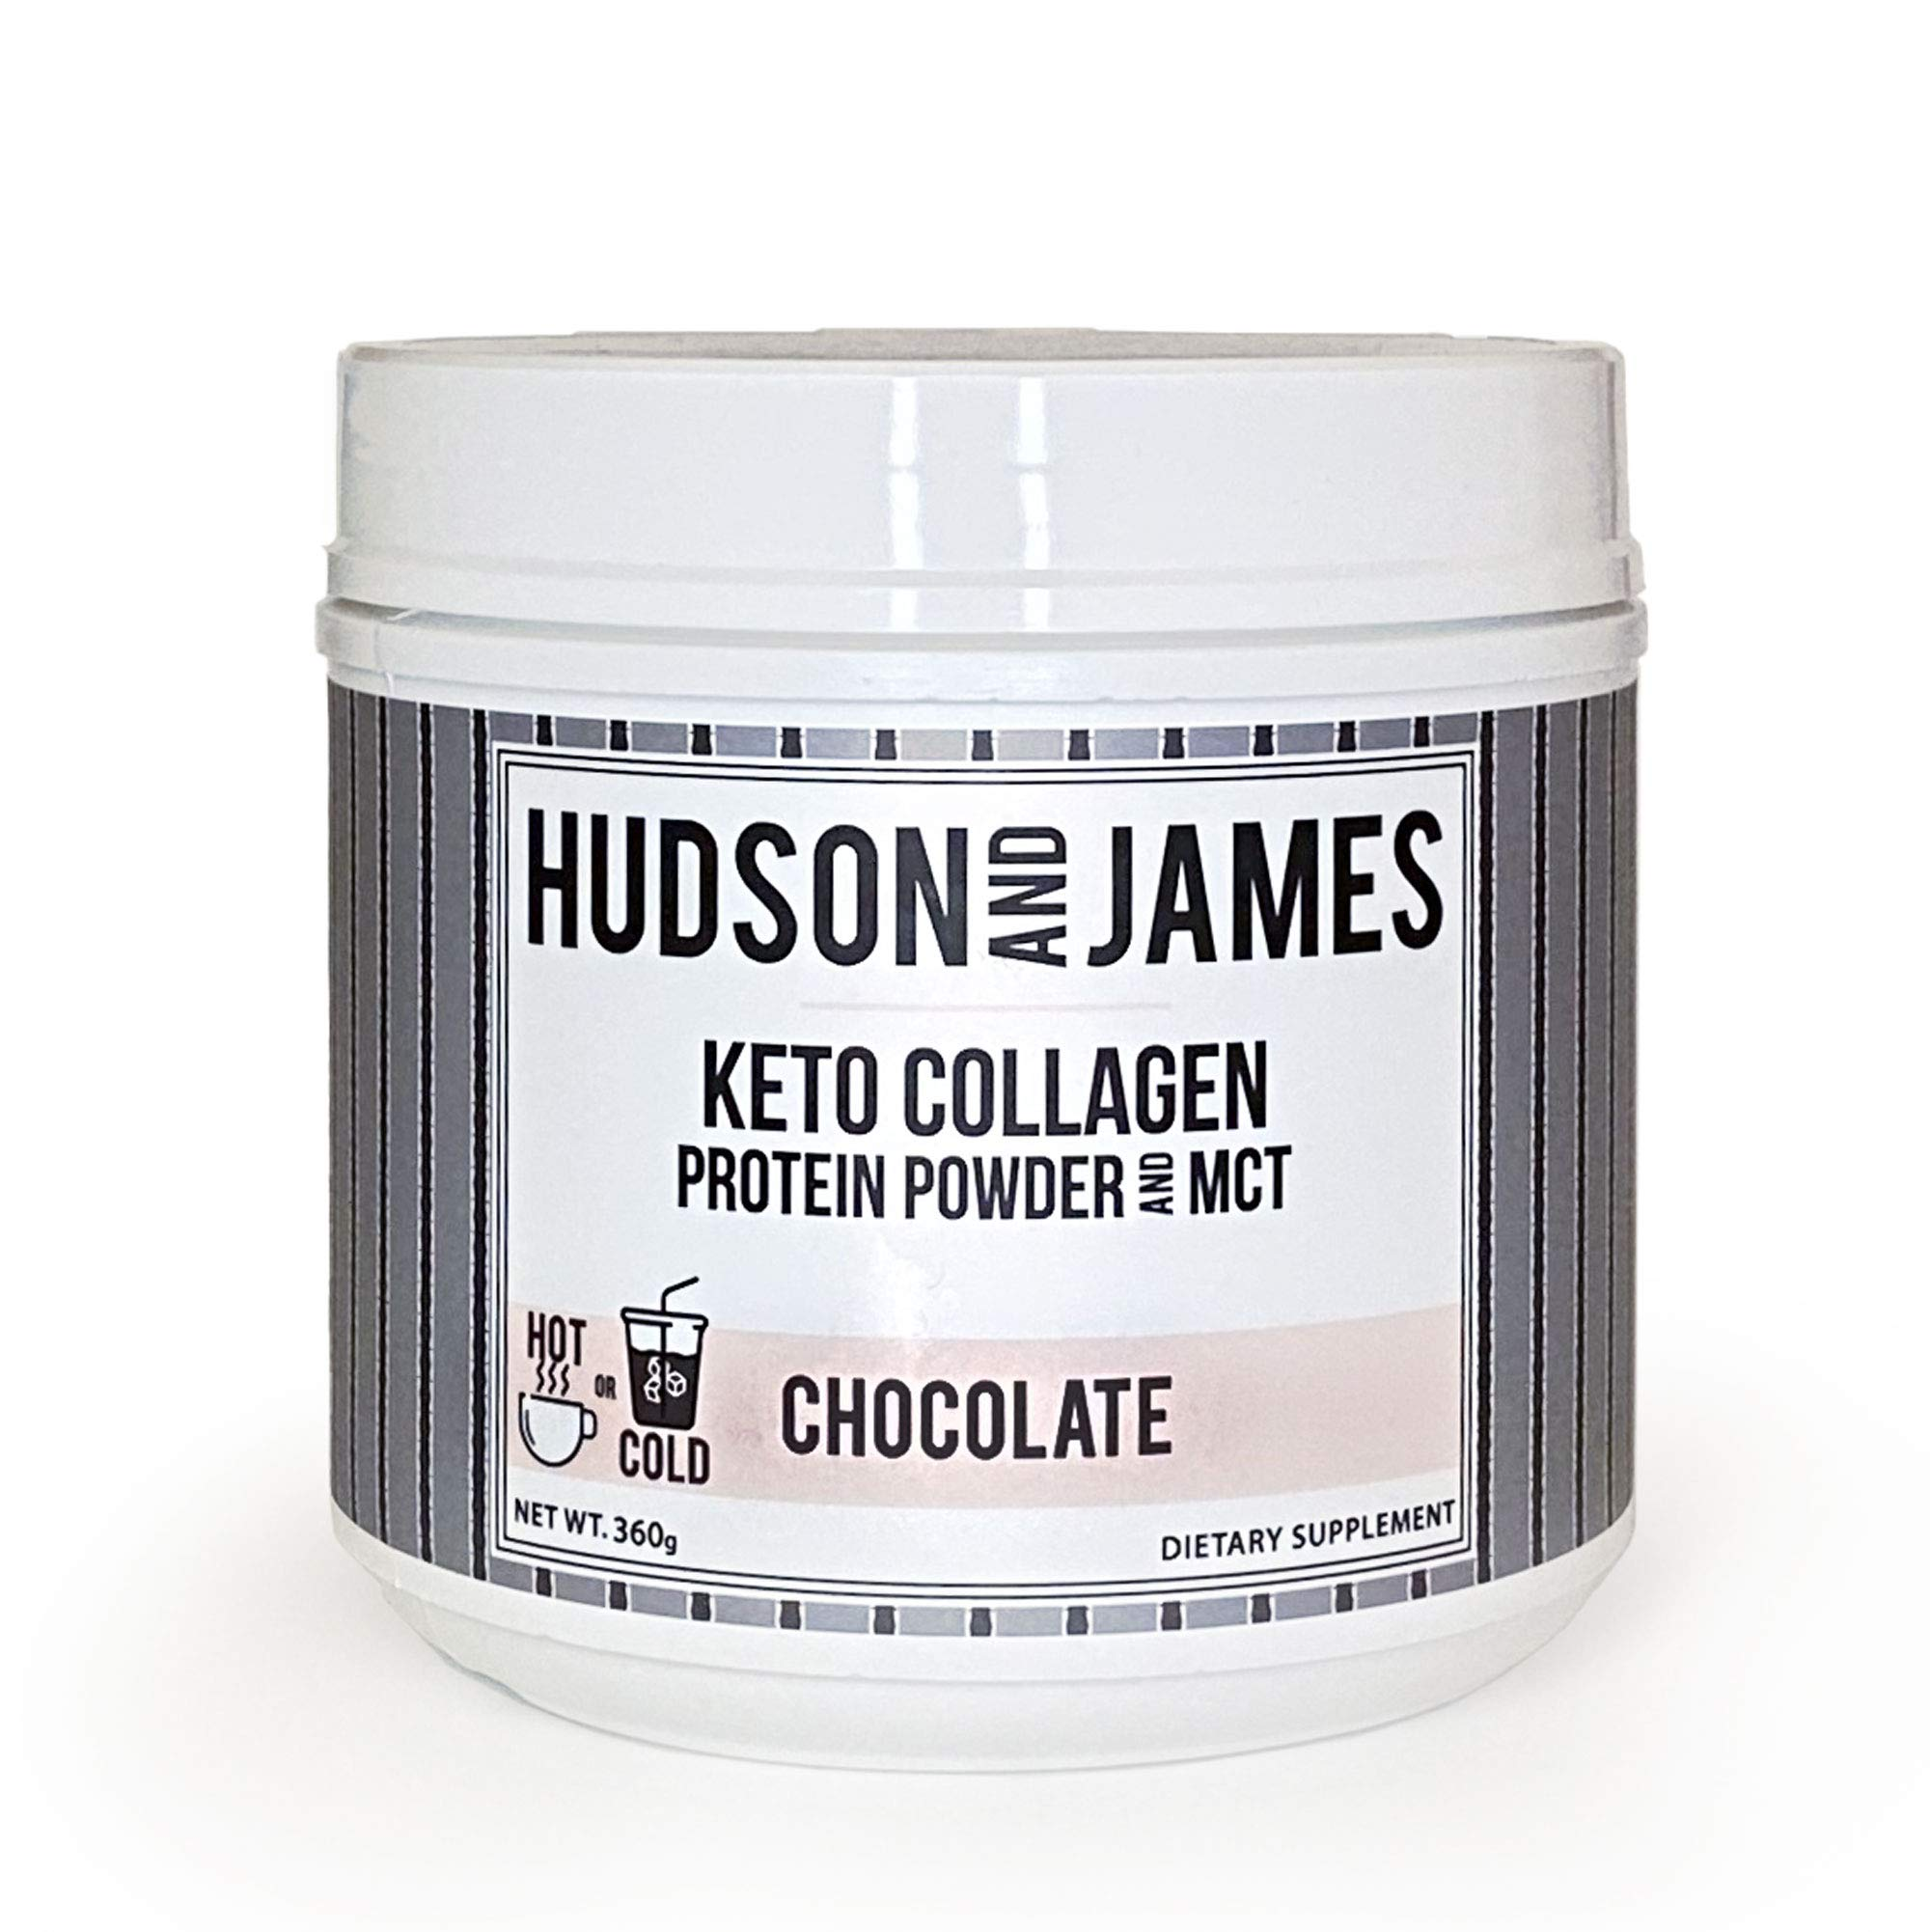 Hudson and James Grass Fed Keto Collagen Peptides Protein Powder and MCT, Chocolate | Pasture Raised, Boost Your Workouts, Improve Skin, Hair & Nails, Boost Focus